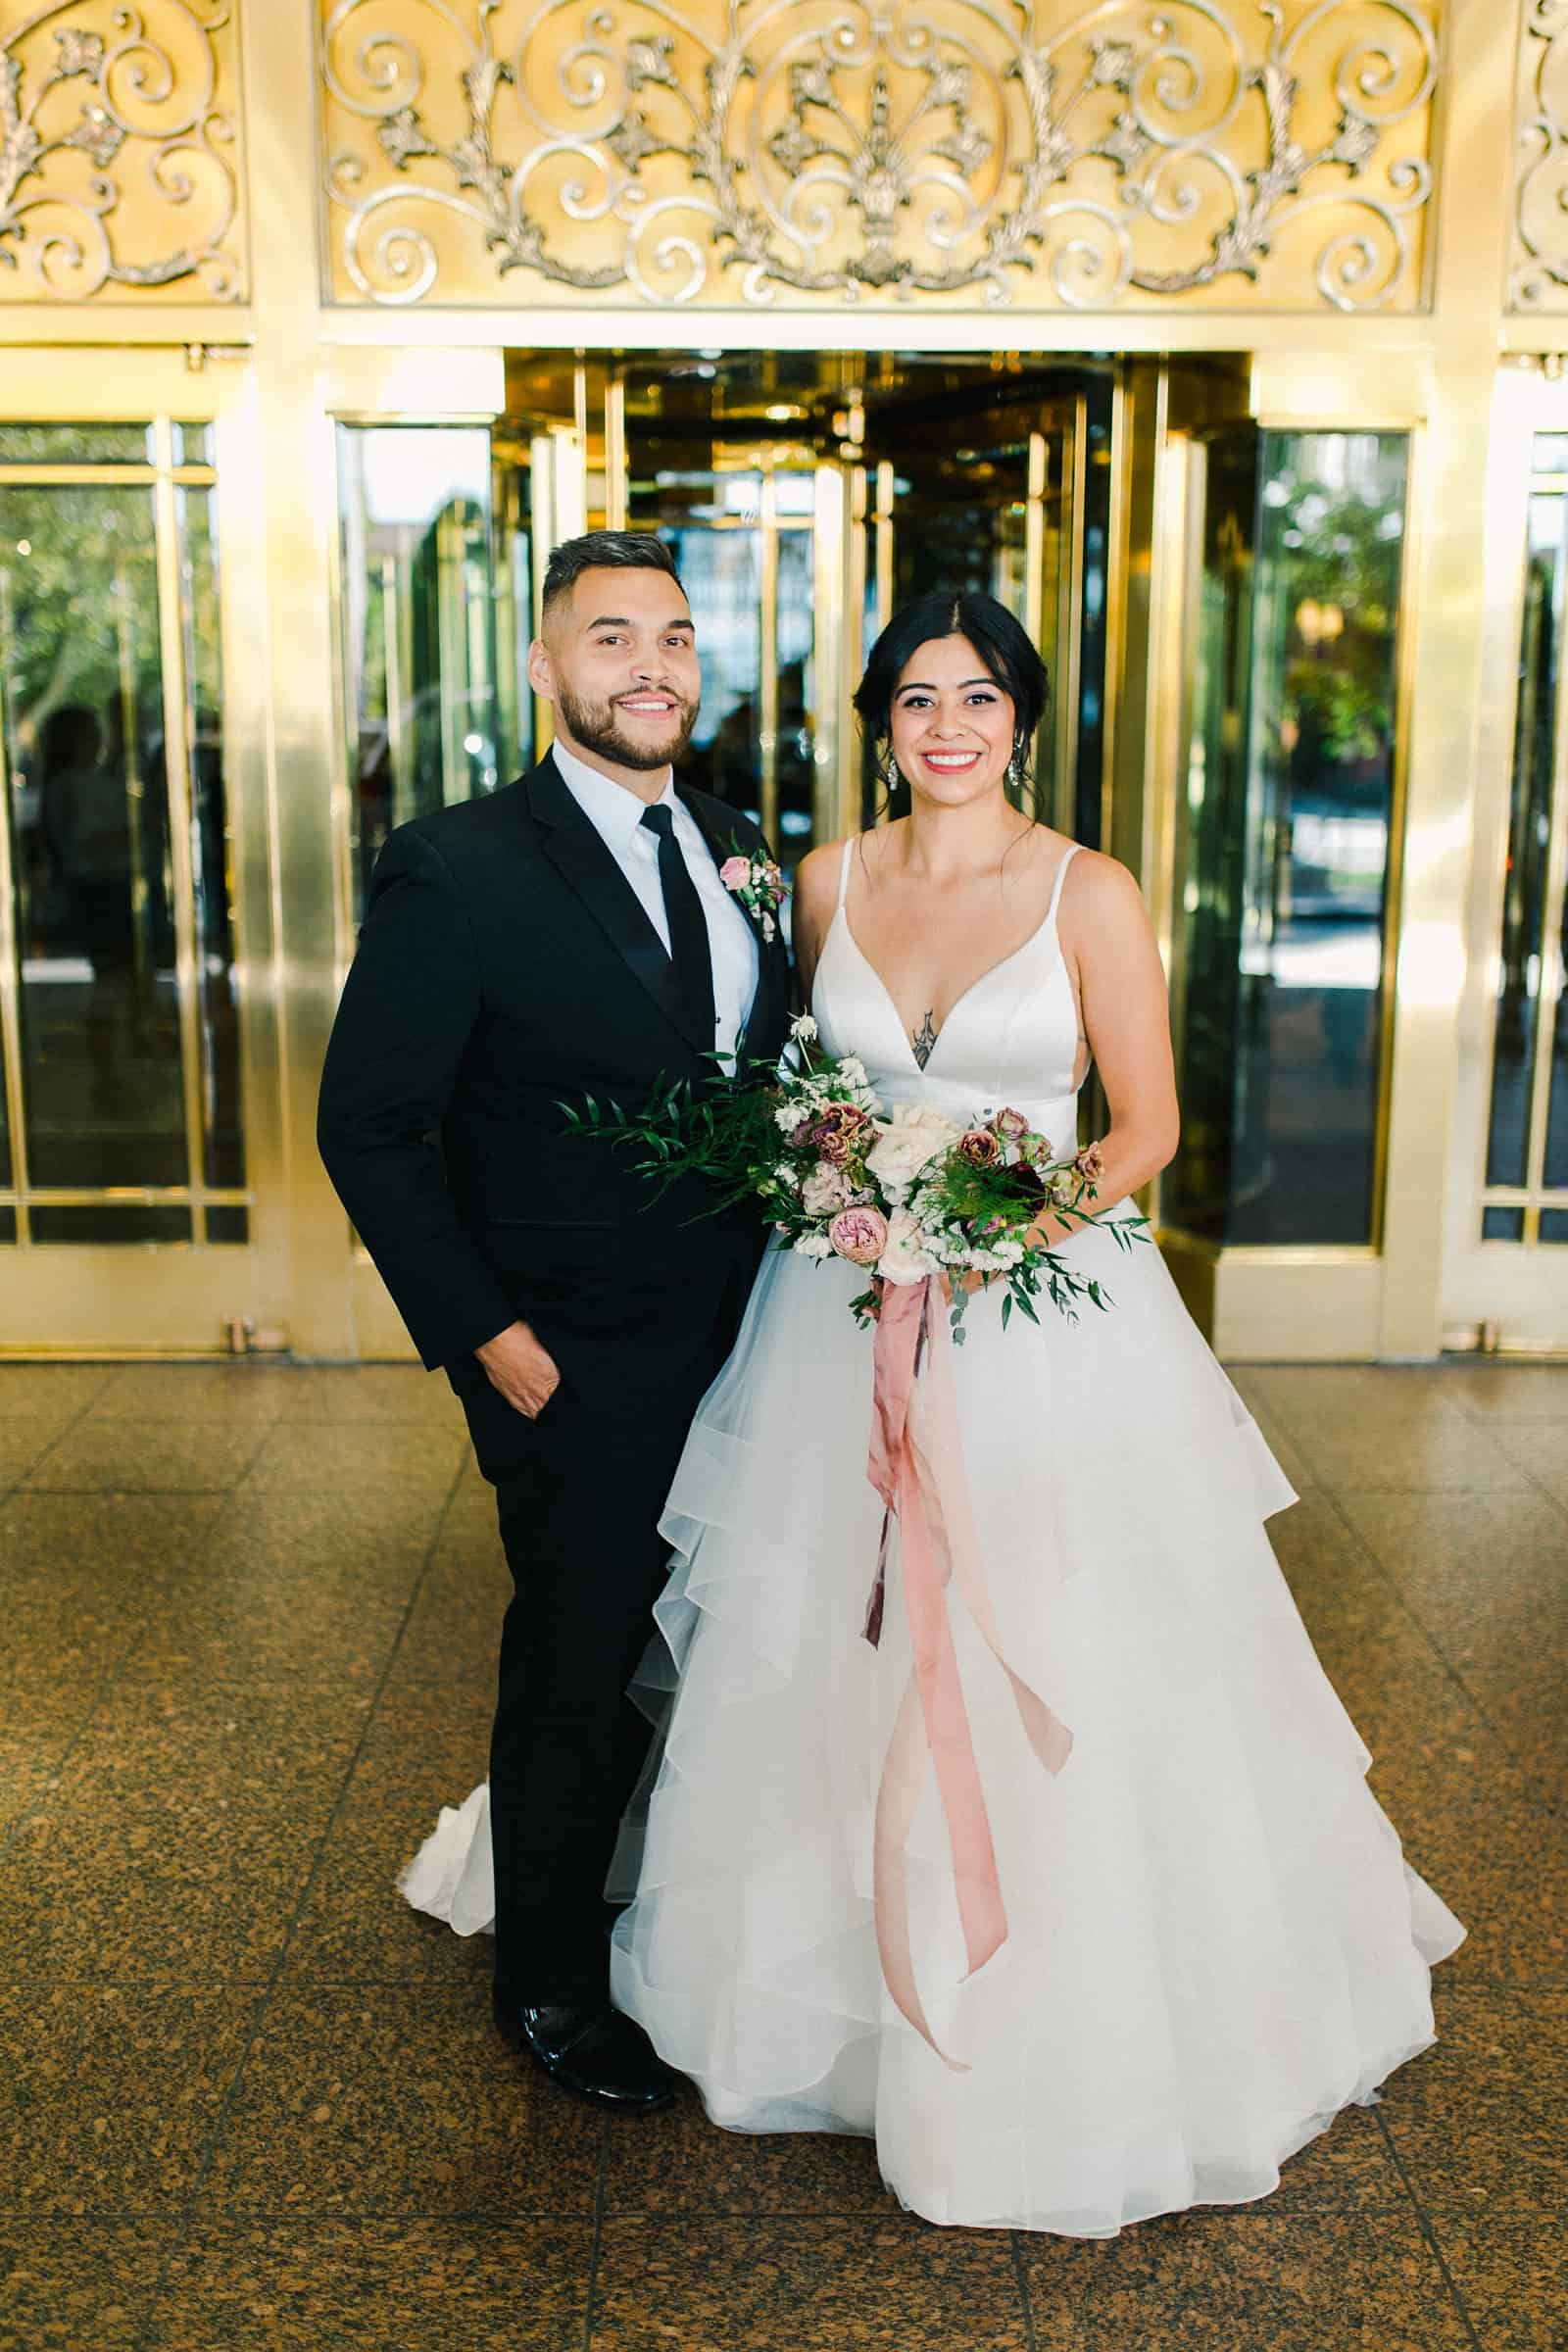 Bride and groom smile in front of gold doors